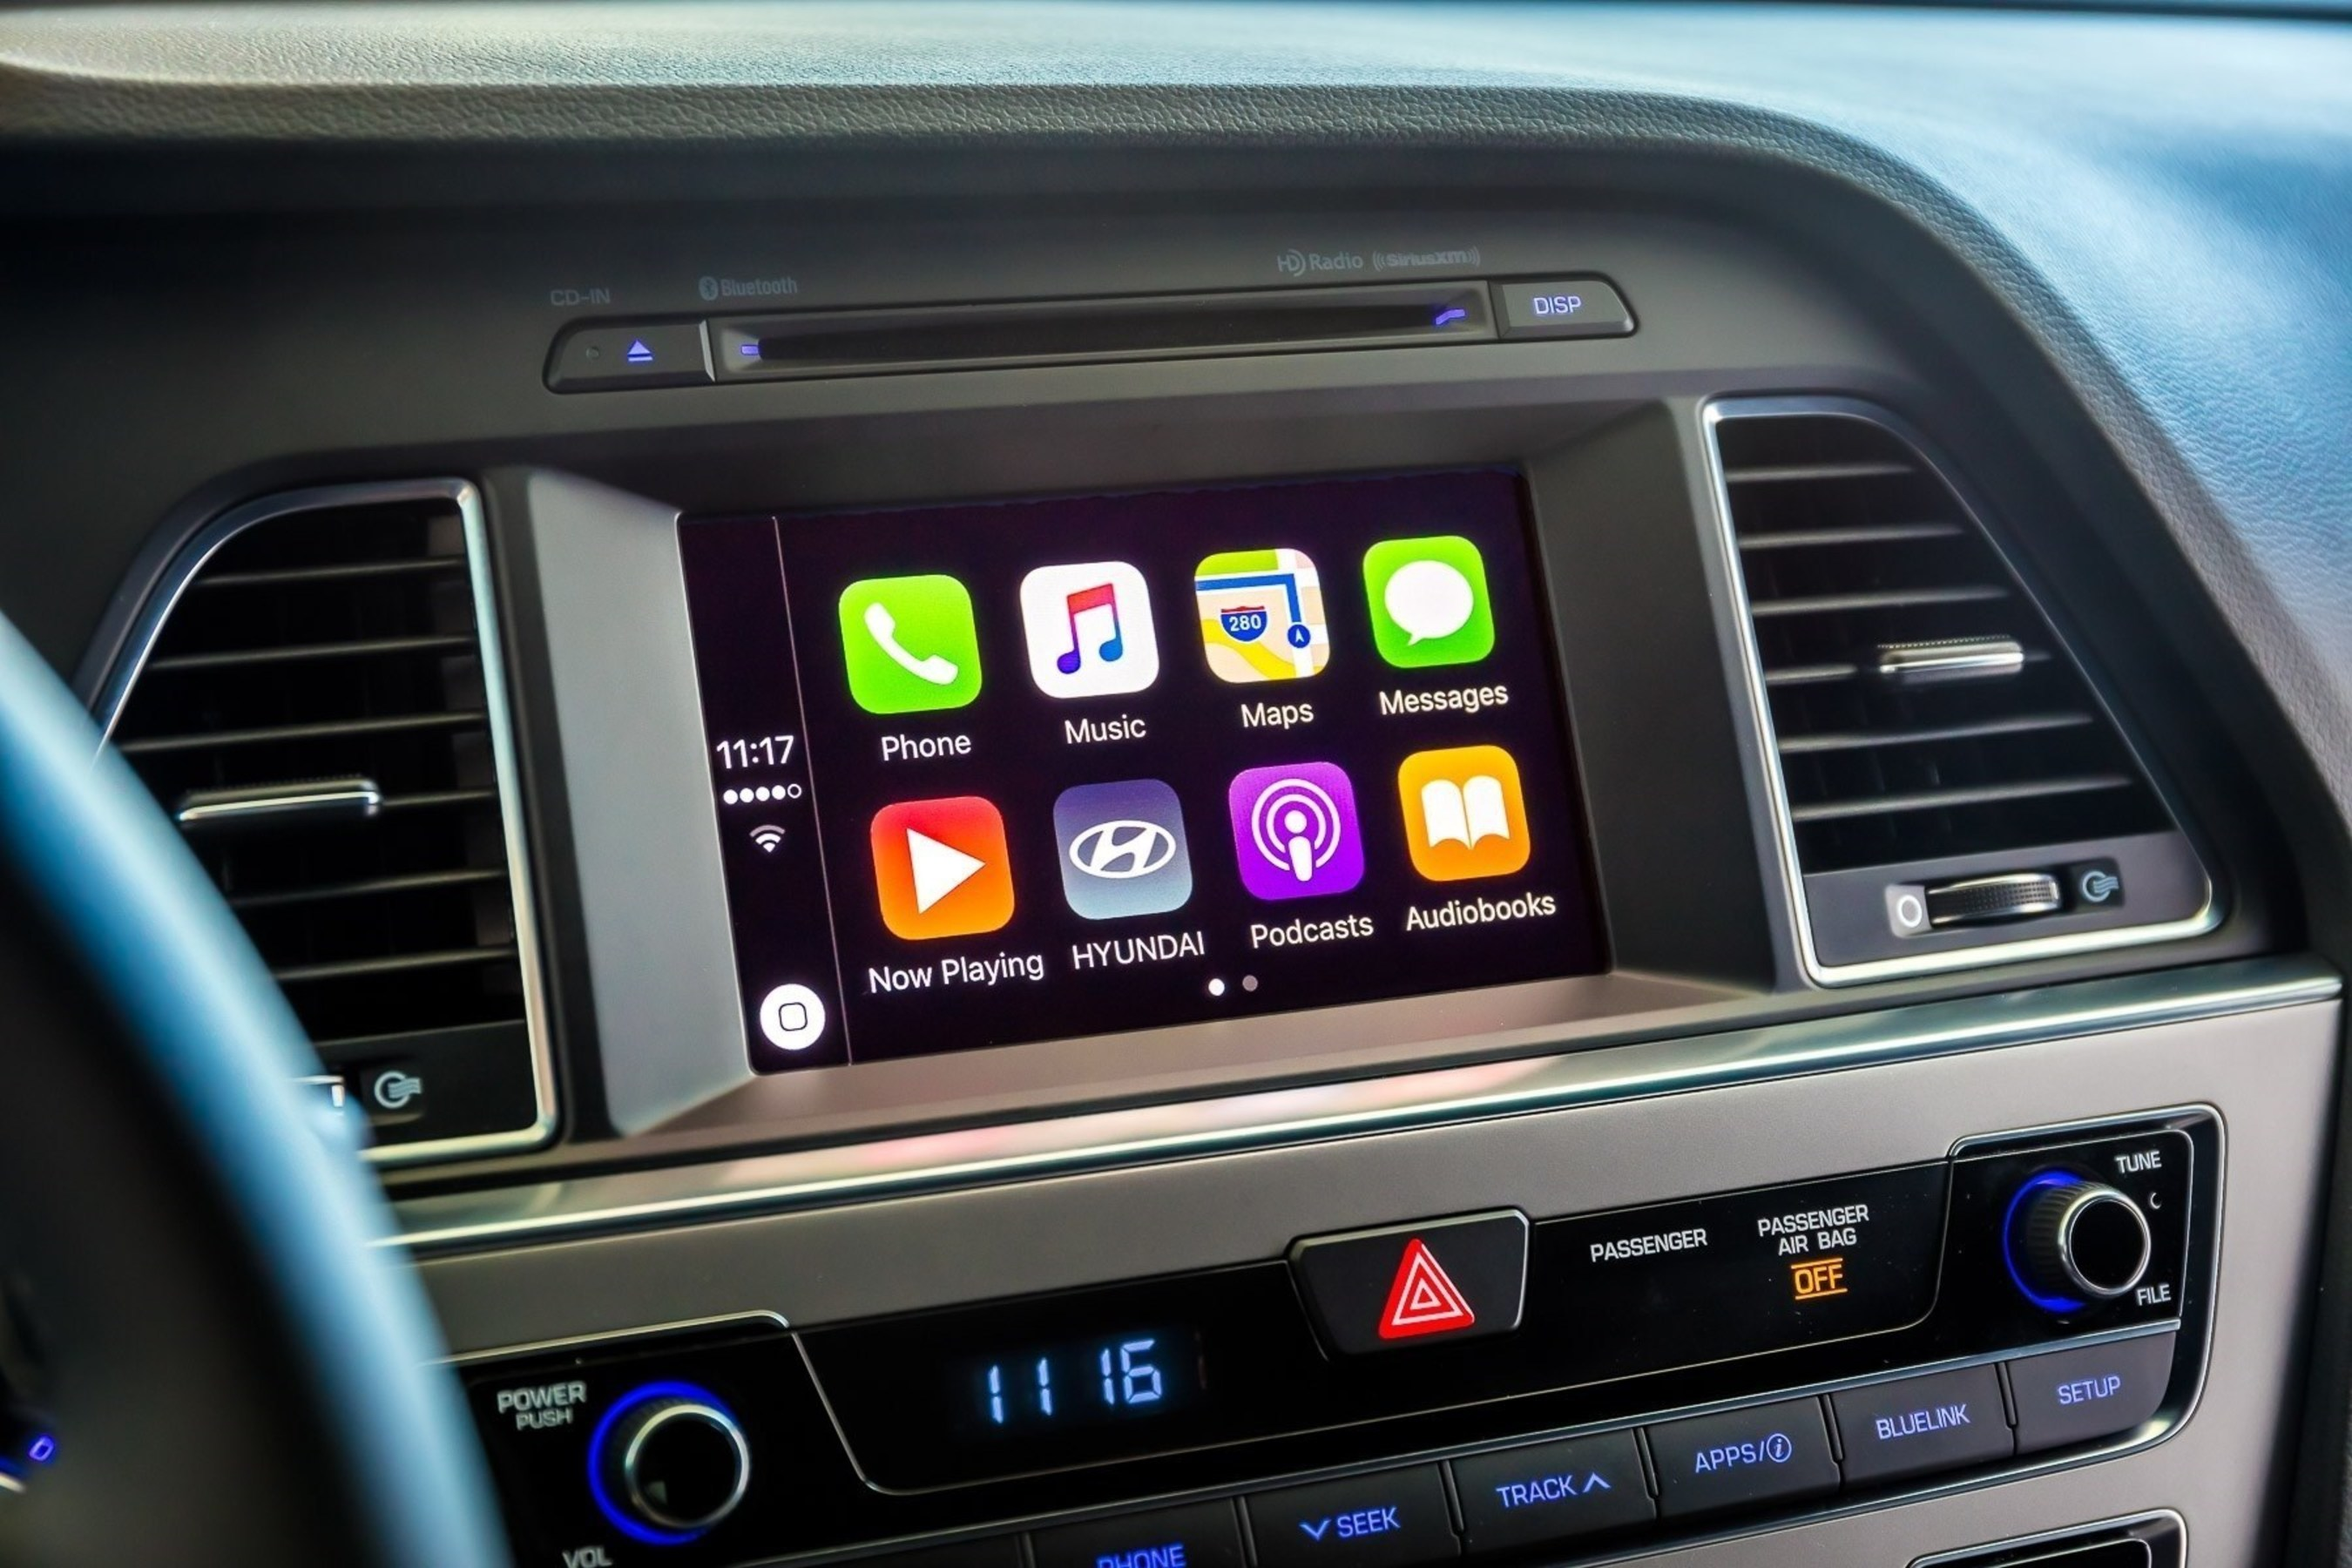 Hyundai is adding smartphone integrations to several more existing models today, via do-it-yourself installation and now has completed the rollout of smartphone integration across the 2017 model year lineup. The software update compatible with CarPlay and Android Auto is now available at no cost through MyHyundai.com (www.myhyundai.com). The software will also be available at Hyundai dealerships nationwide for an installation fee.